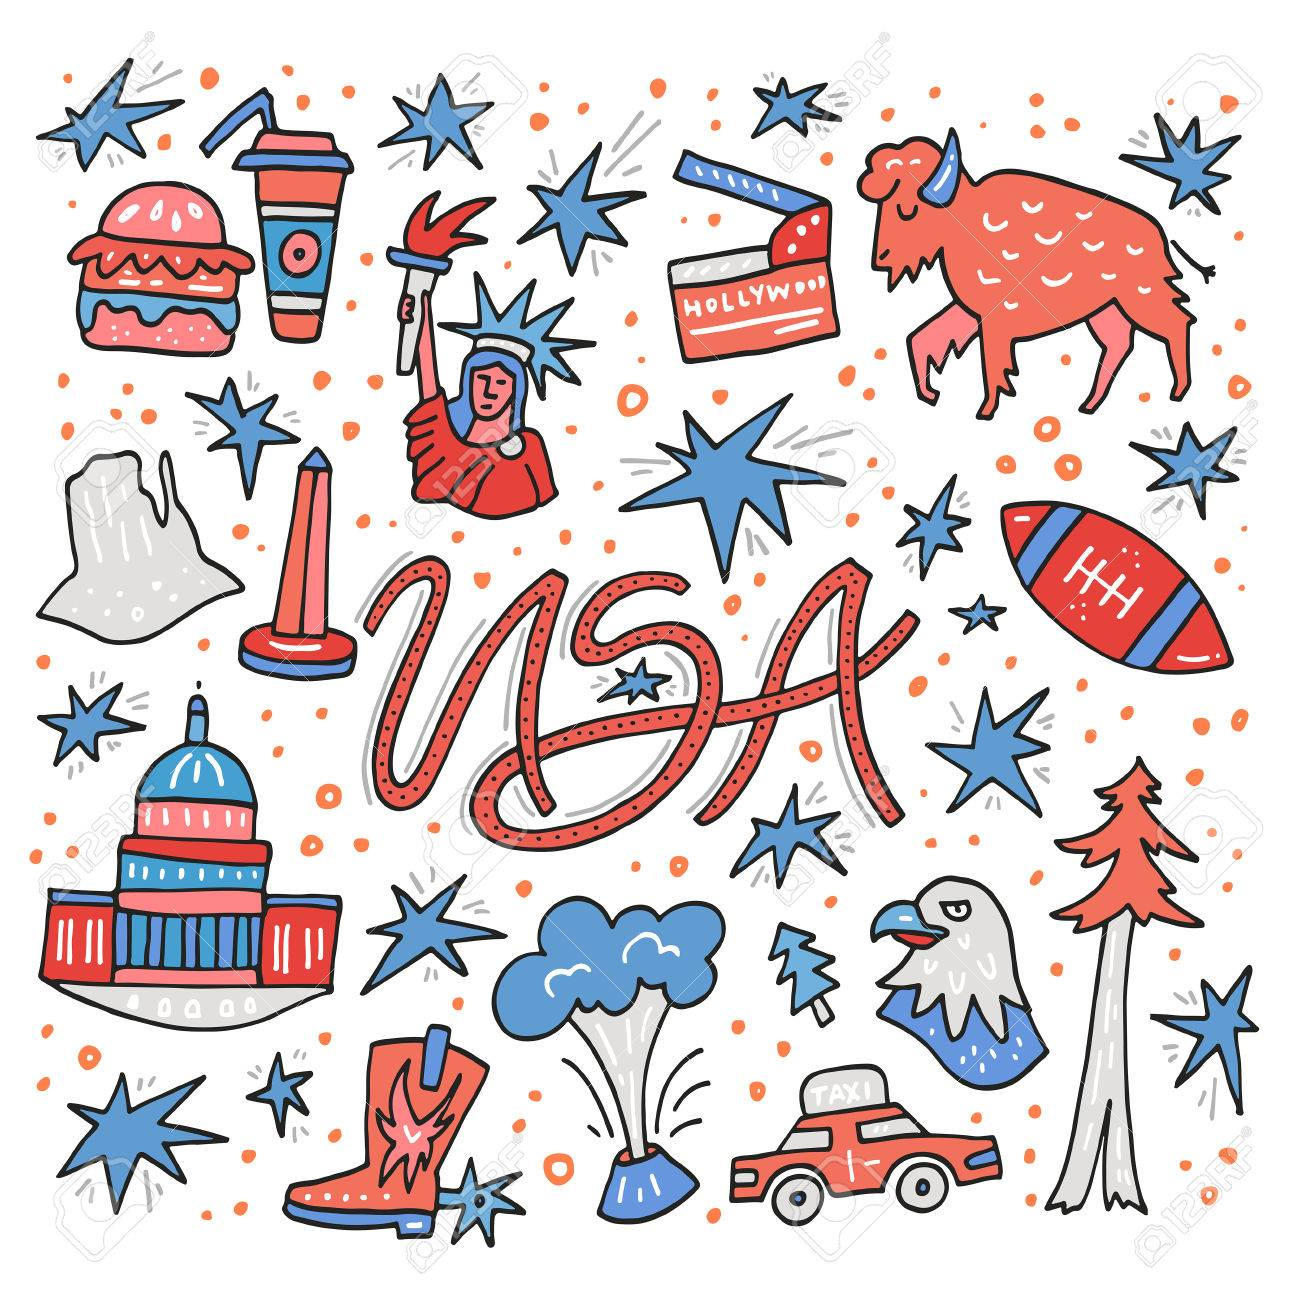 Hand drawn symbols of United States. USA clipart made in vector..